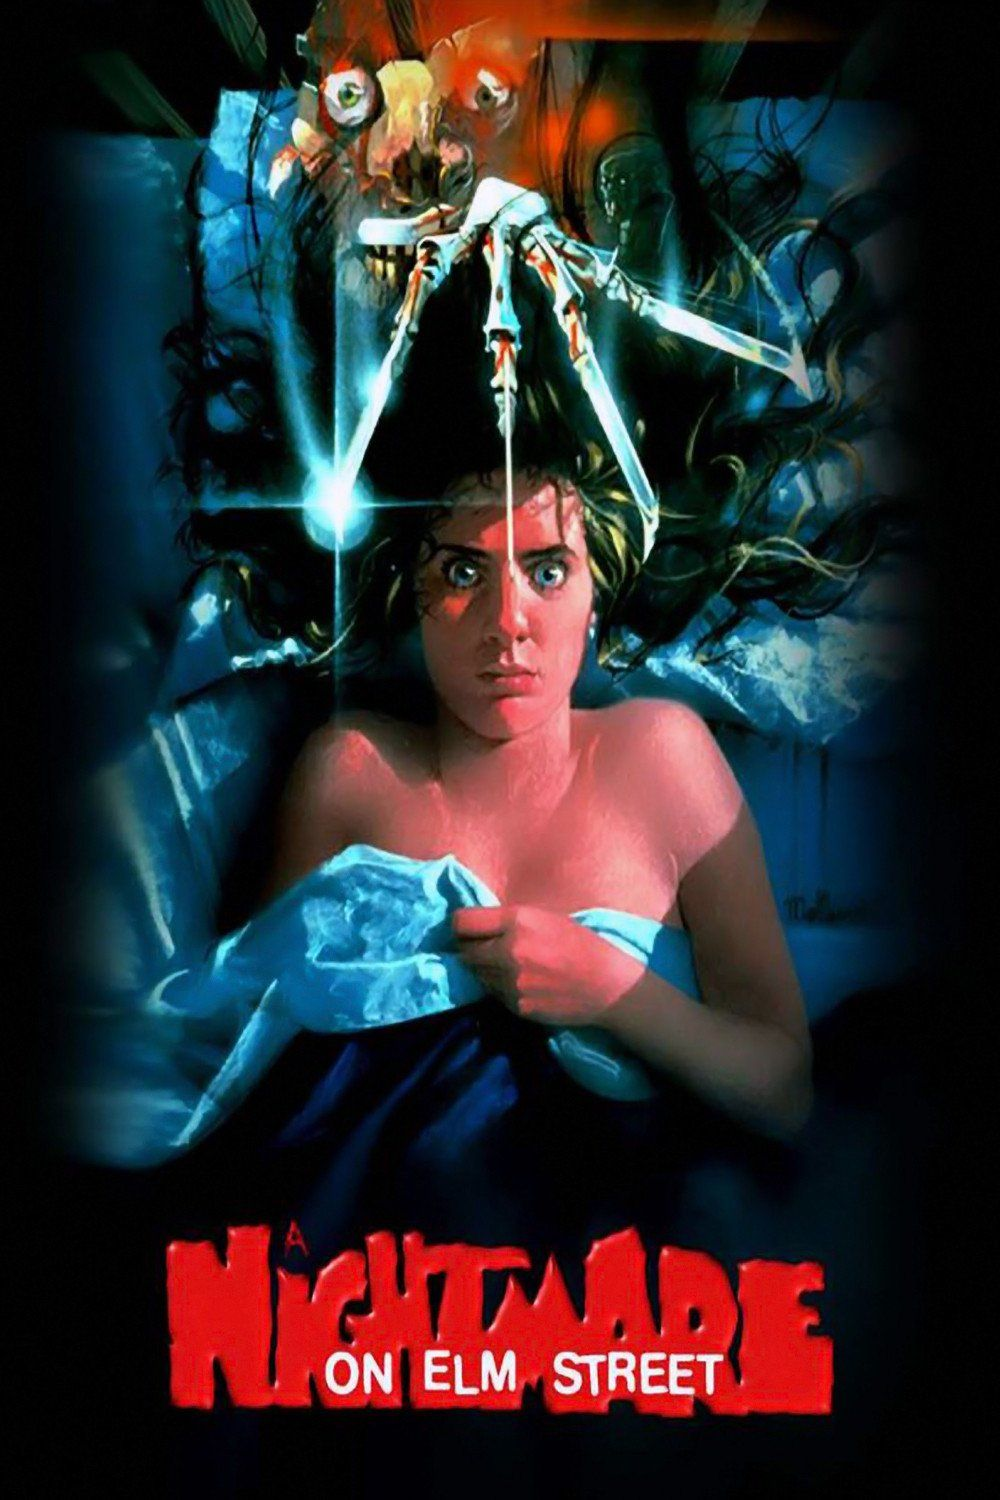 A Nightmare On Elm Street 1984 Horror Movie Directed By Wes